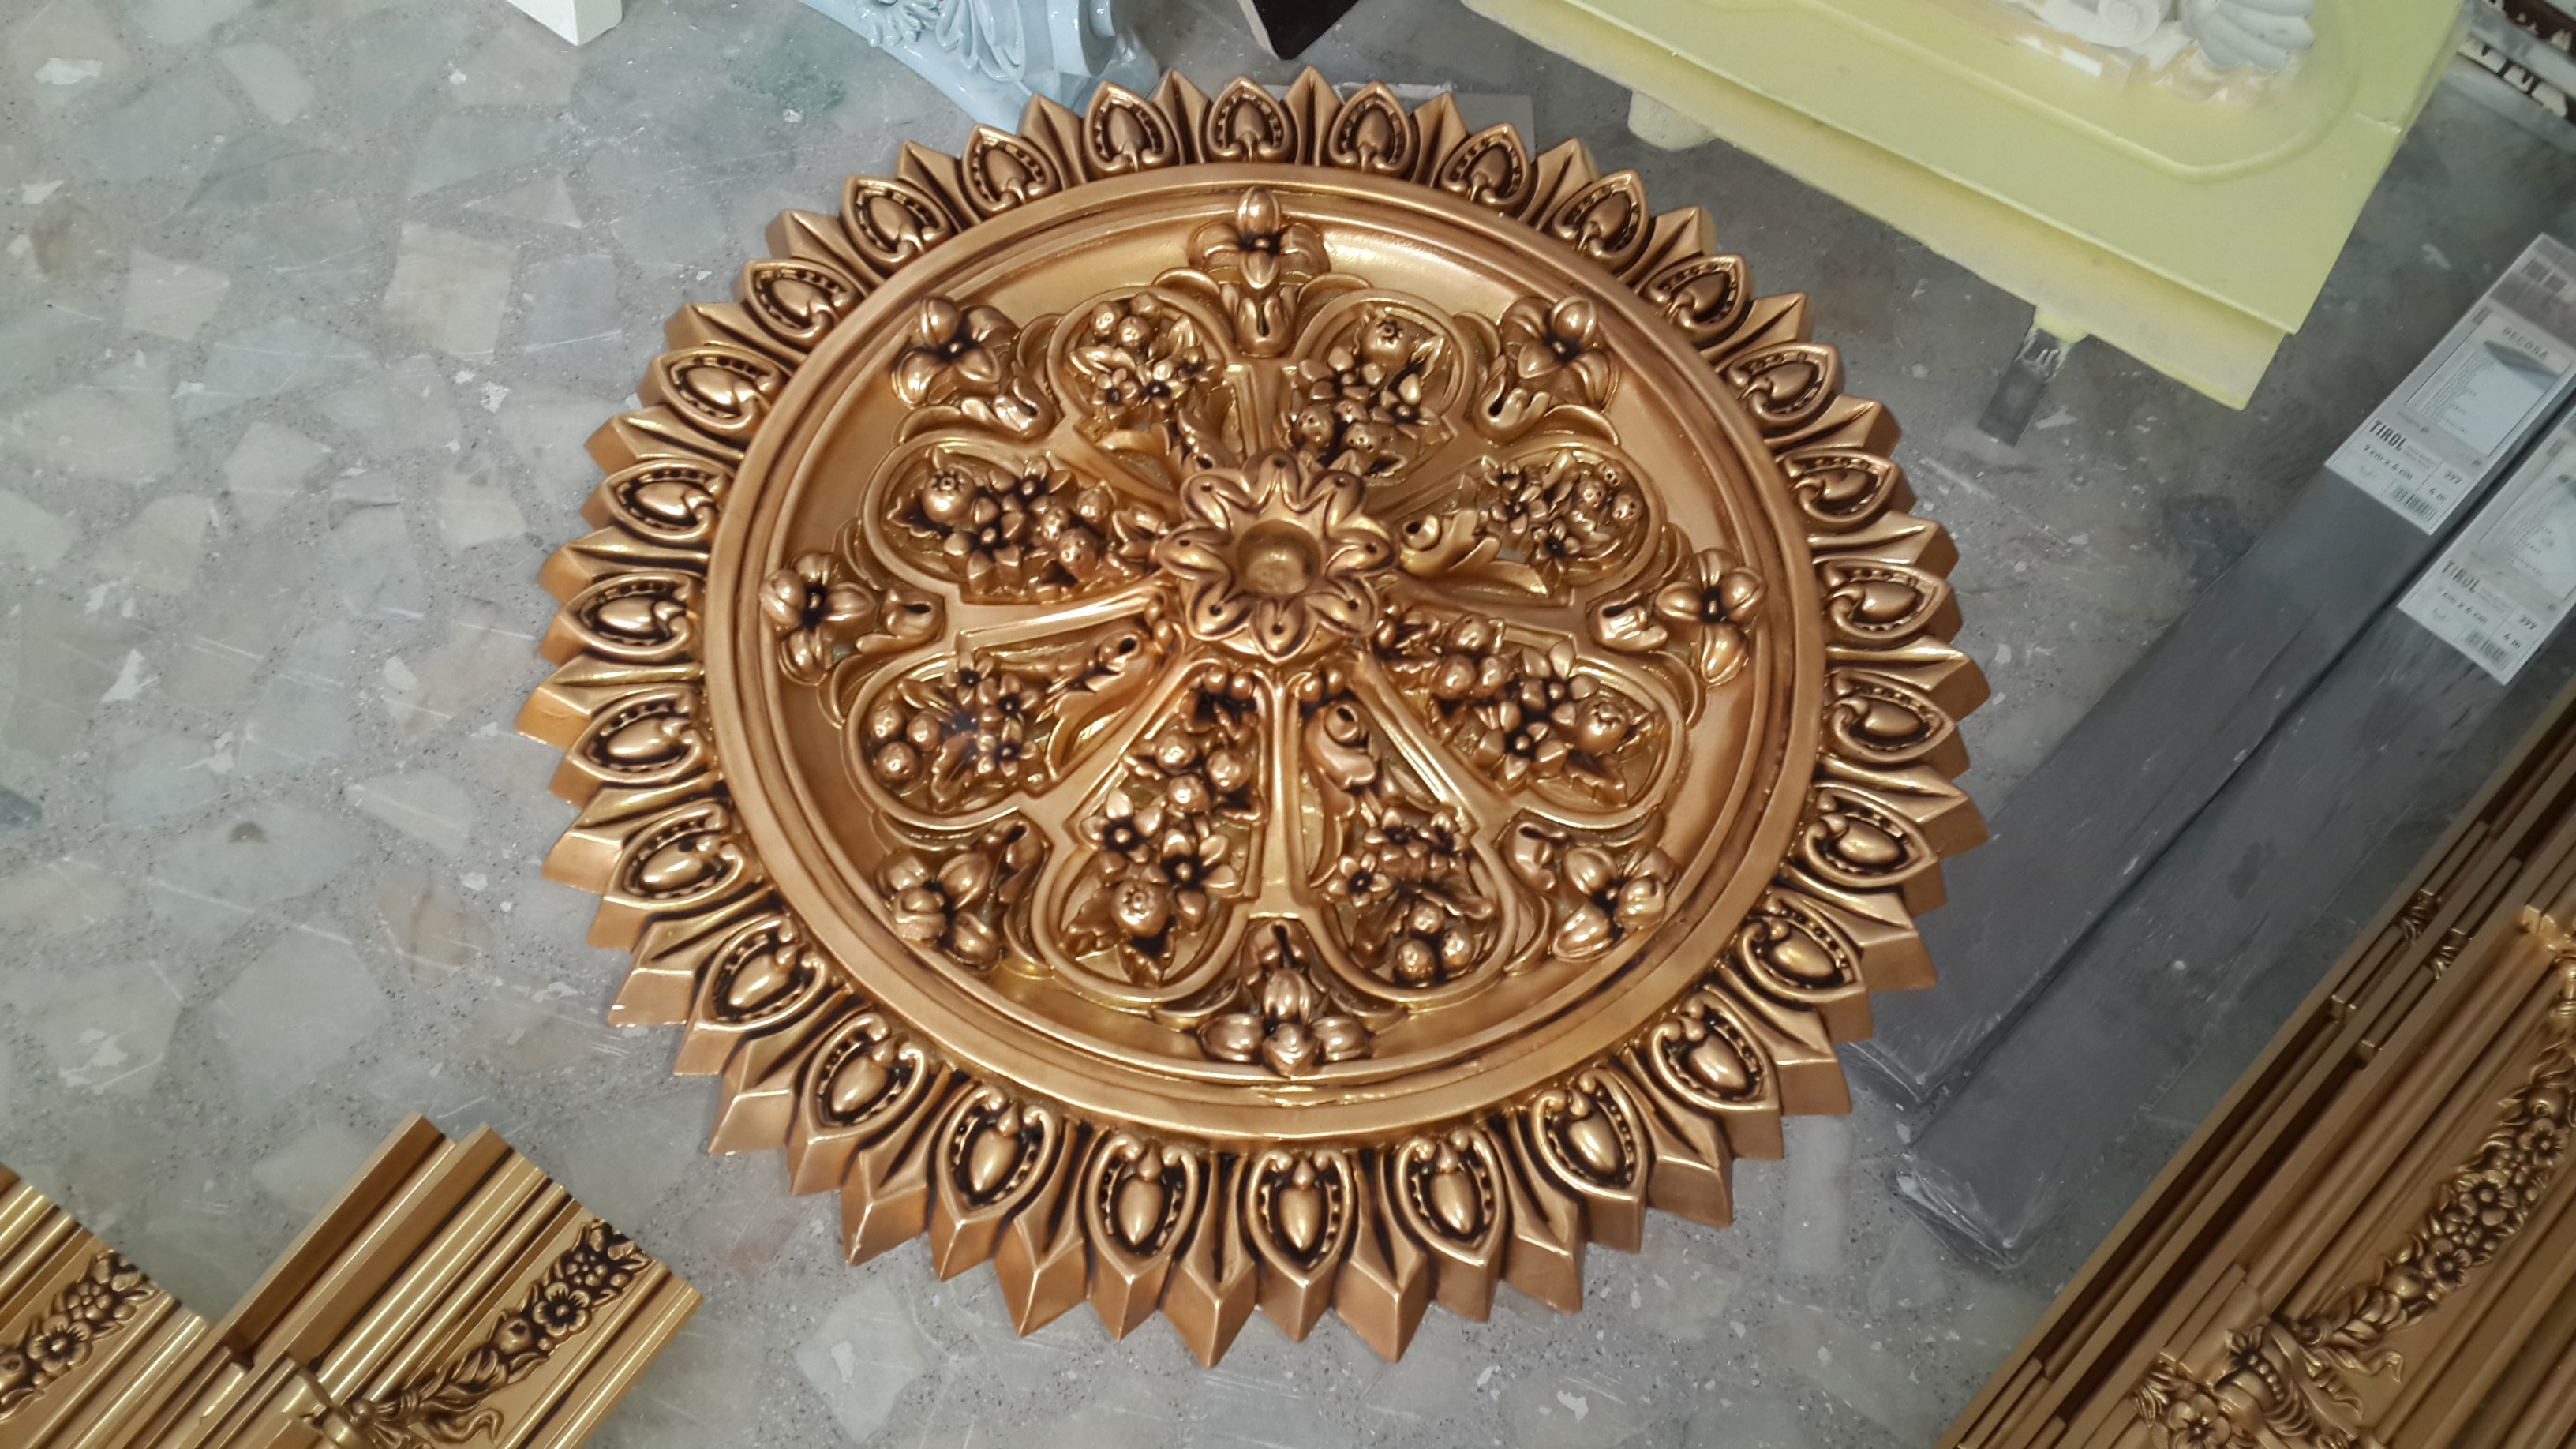 We are the manufacture of polyurethane decorative ornament ceiling rose moulding with carved gold leaf.Polyurethane rosette models are equivalent of styrofoam gold gilded,silver and gold leaf ceiling rose ornament models.